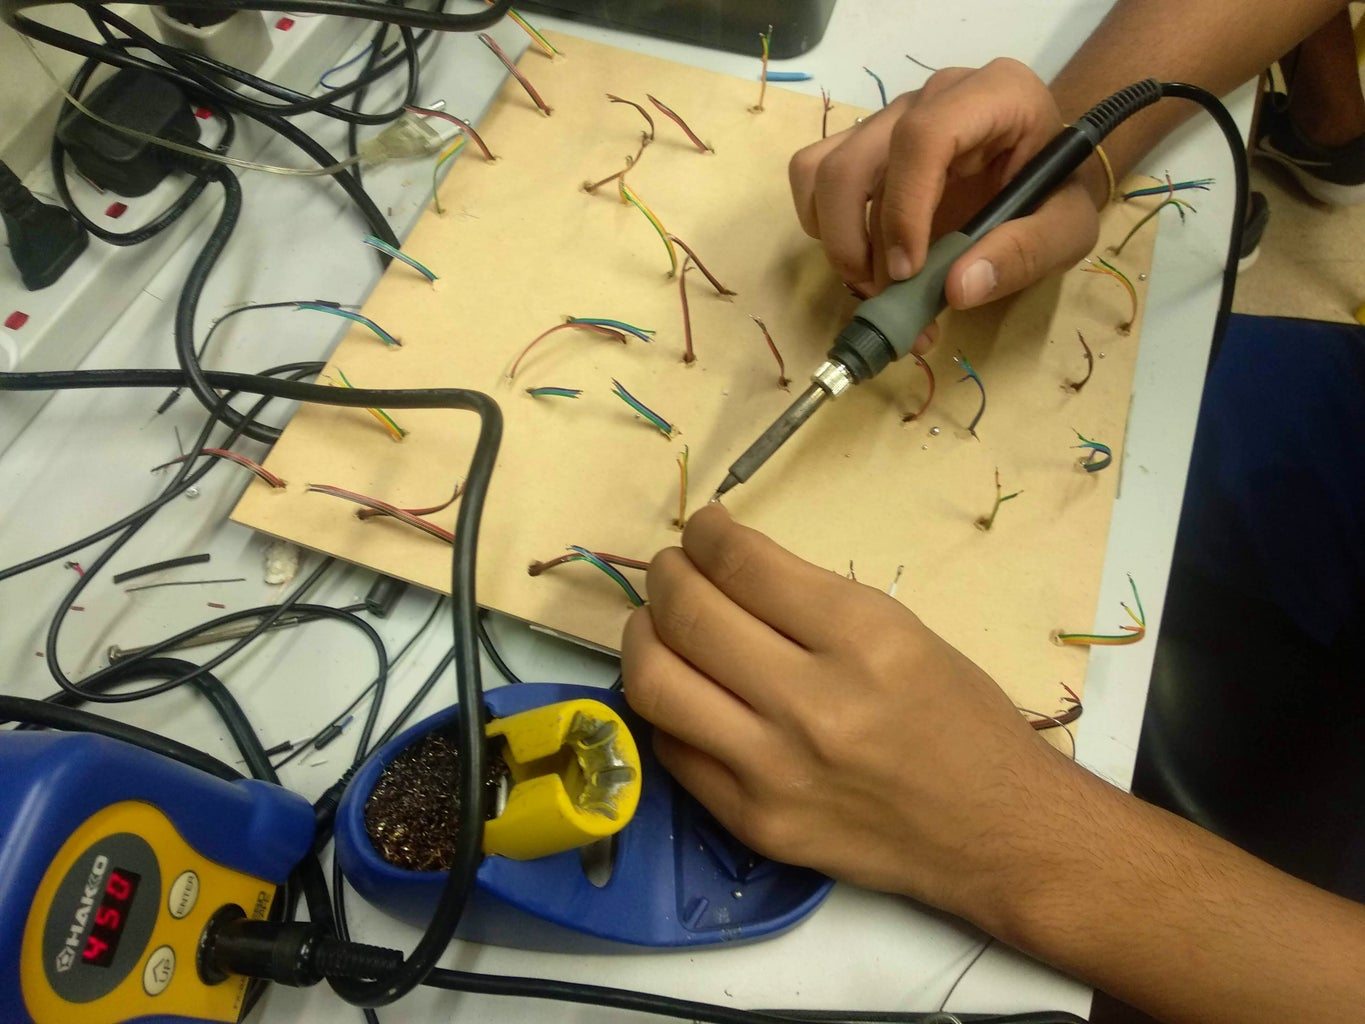 Soldering and Insulating the LEDs